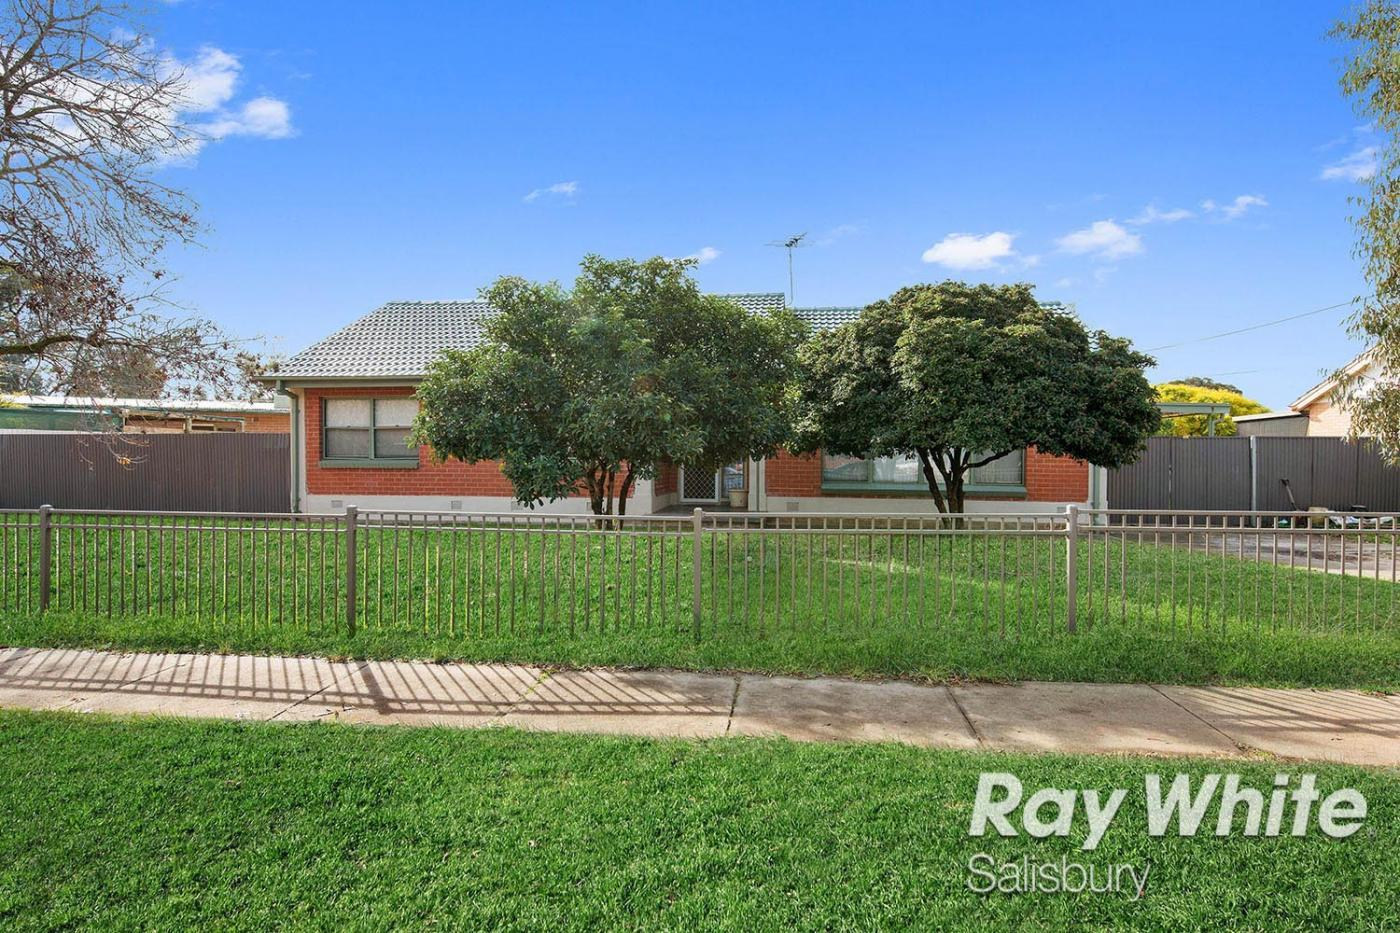 42 ballard road, smithfield plains, sa 5114 sale & rental history